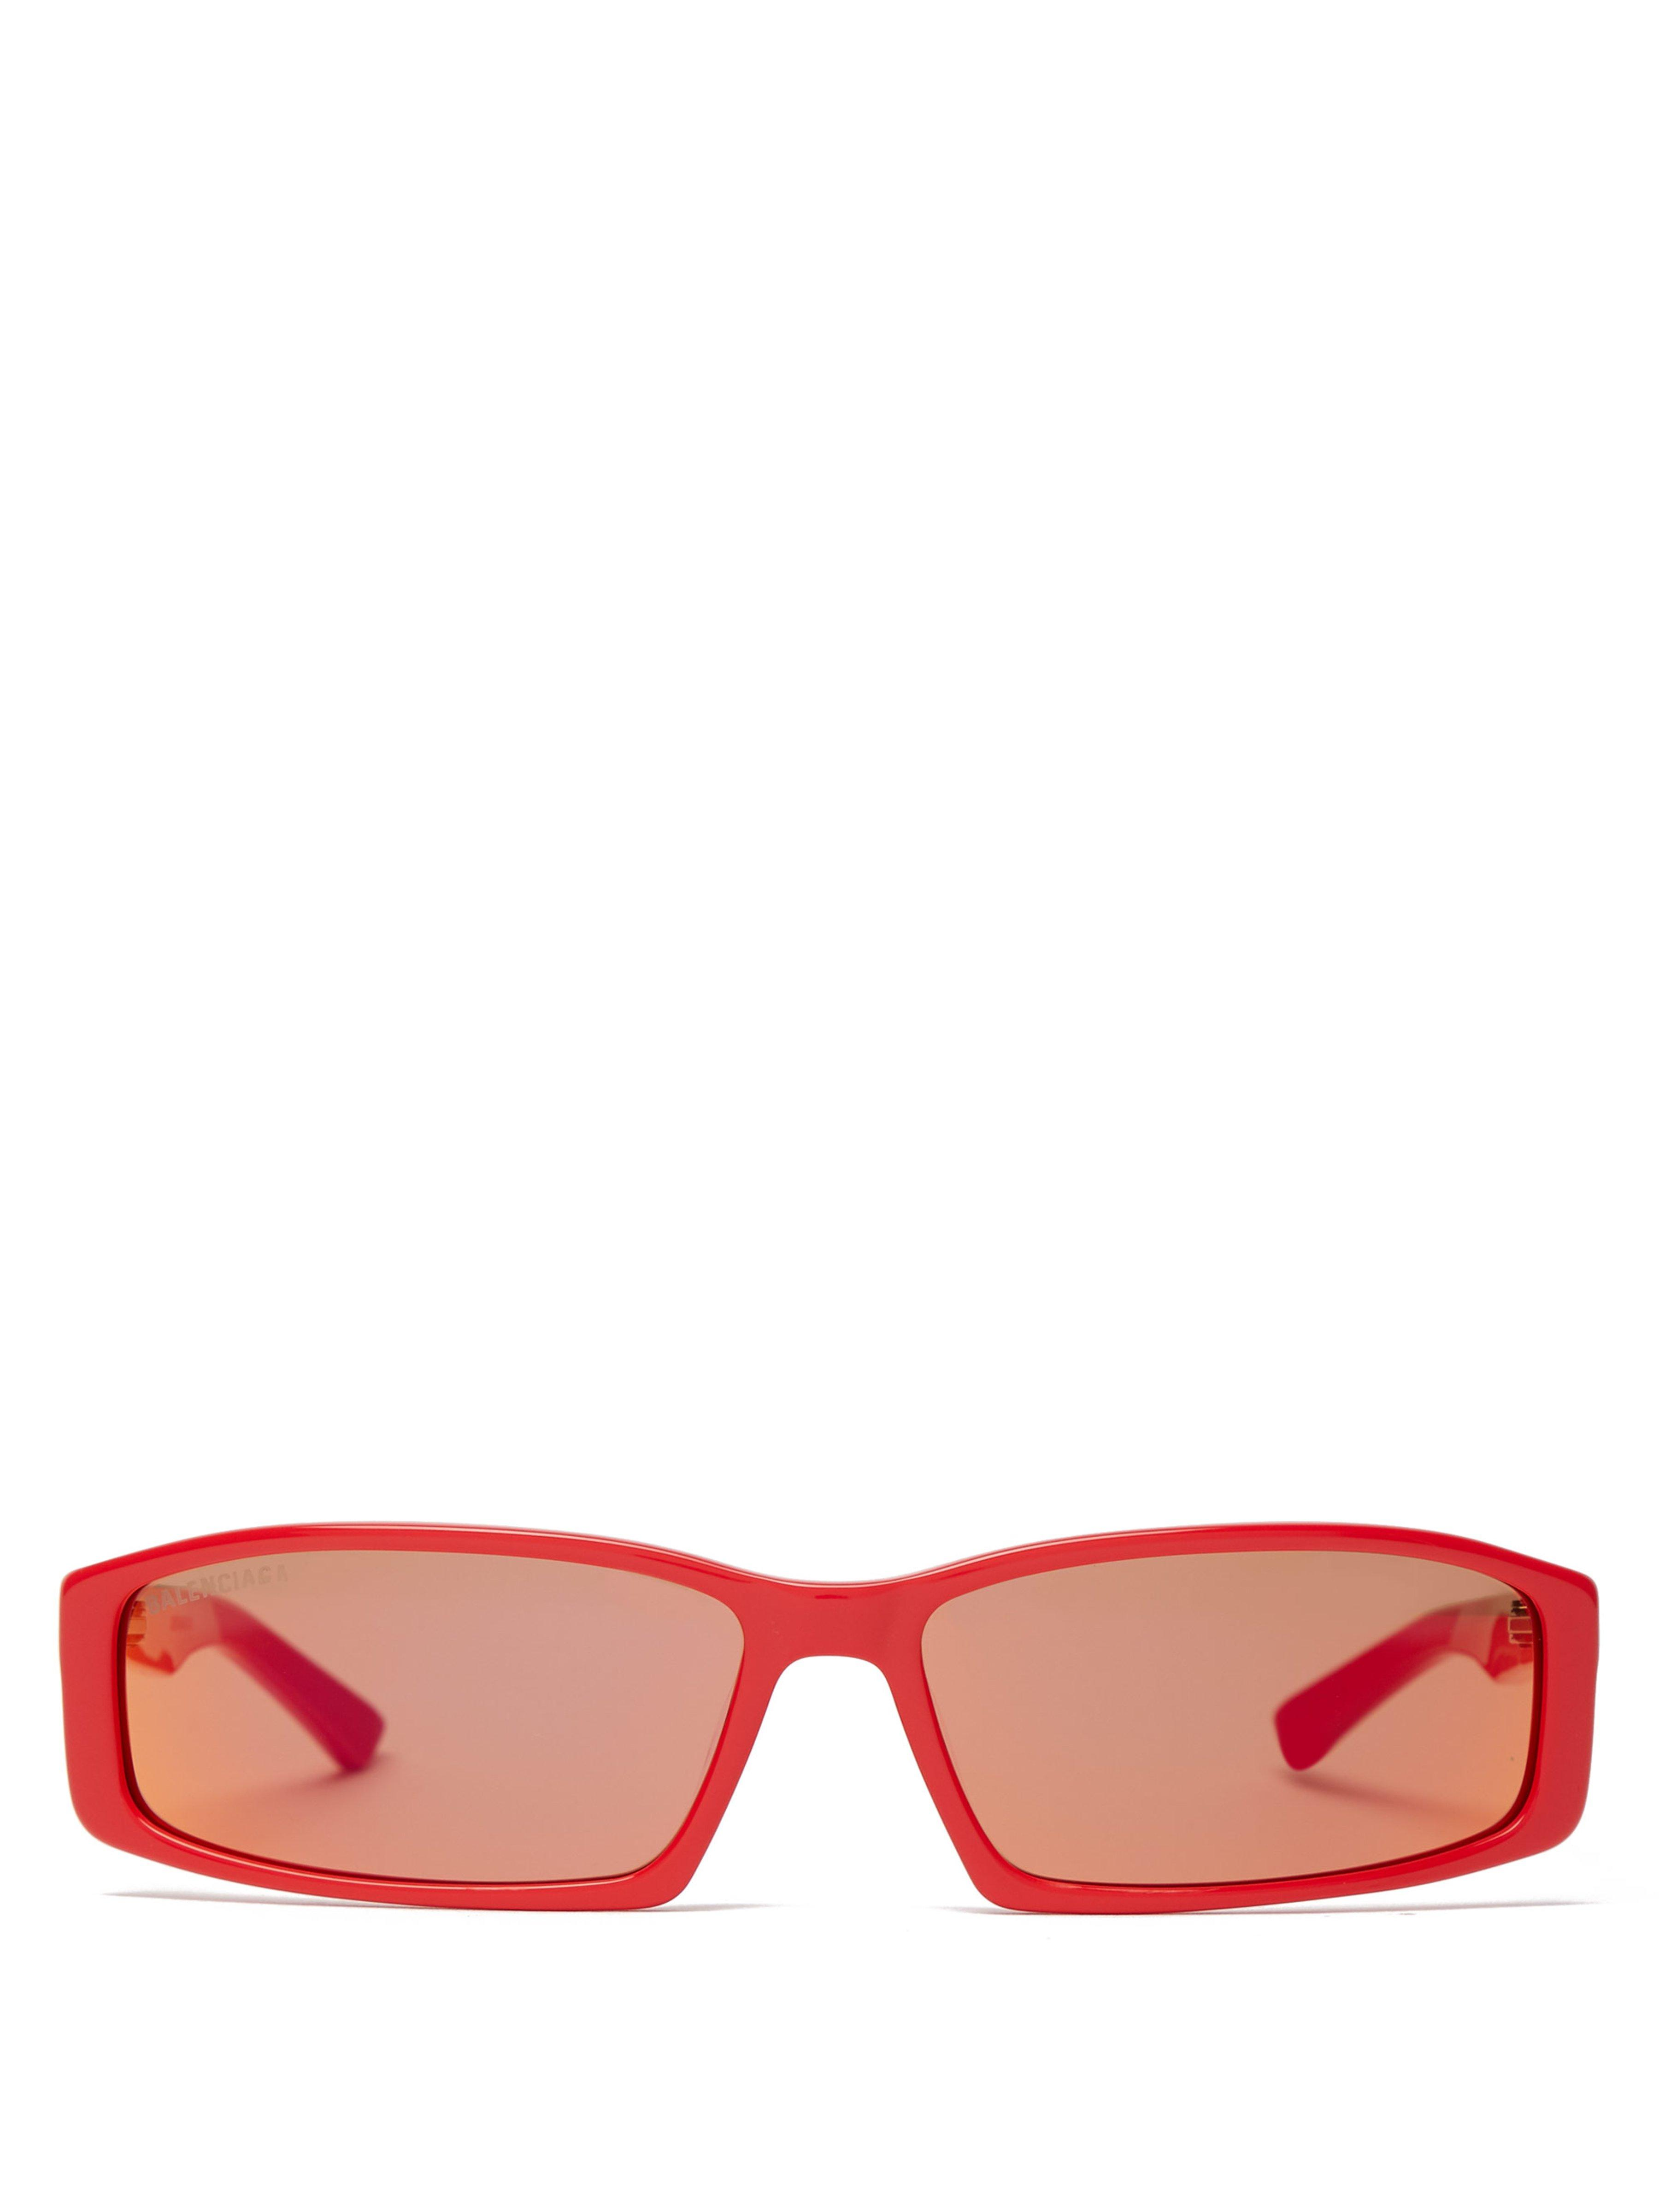 ae0ba511d5 Balenciaga Rectangle Frame Acetate Sunglasses in Red for Men - Lyst